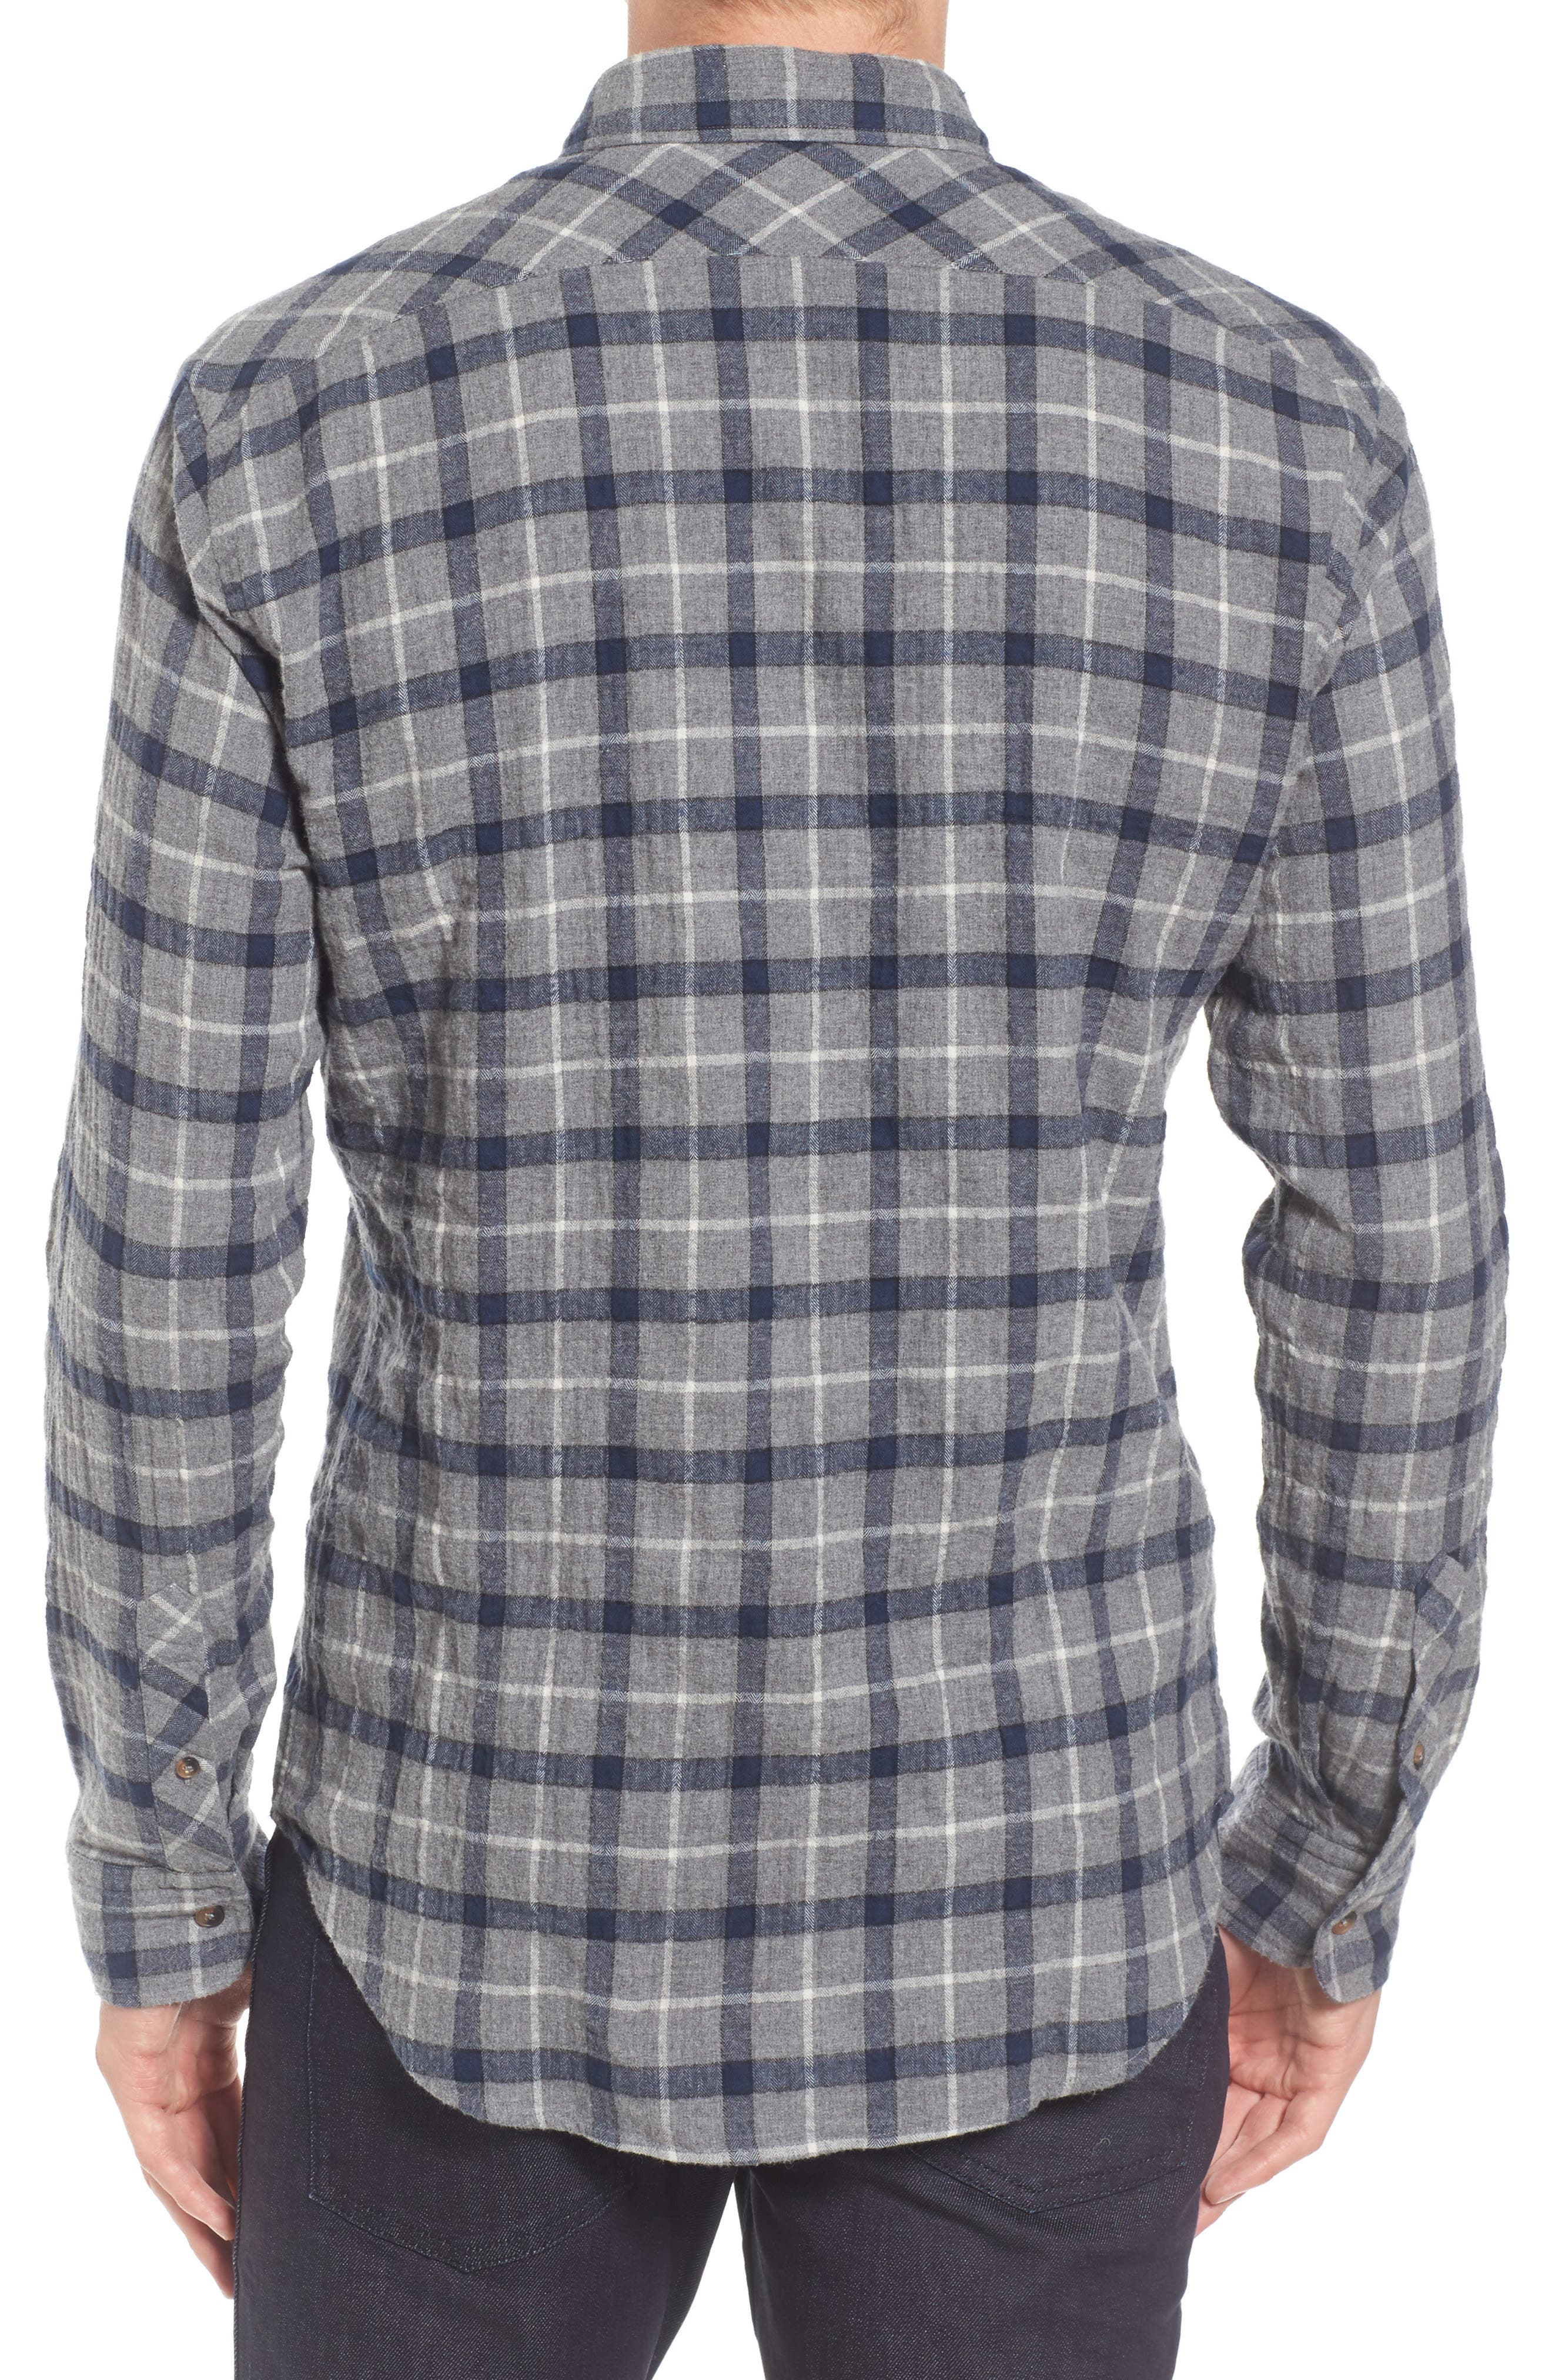 Murphy Slim Fit Plaid Sport Shirt,                             Alternate thumbnail 2, color,                             Grey/ Navy